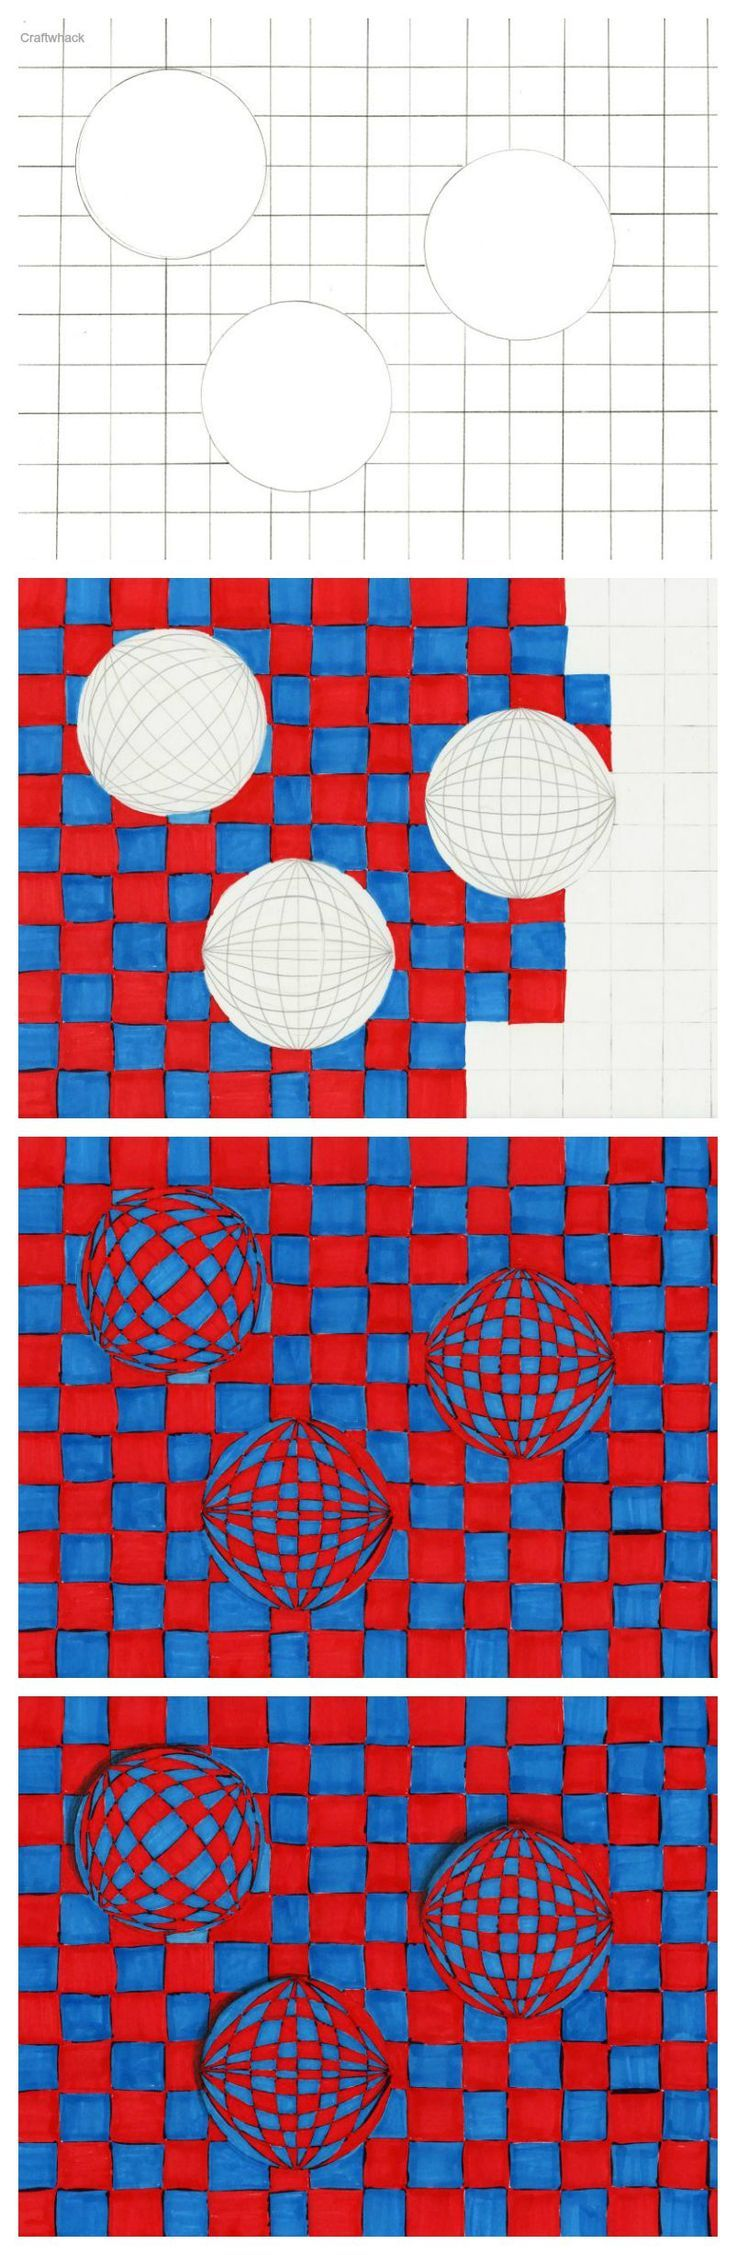 Cool Op Art Sphere Drawings